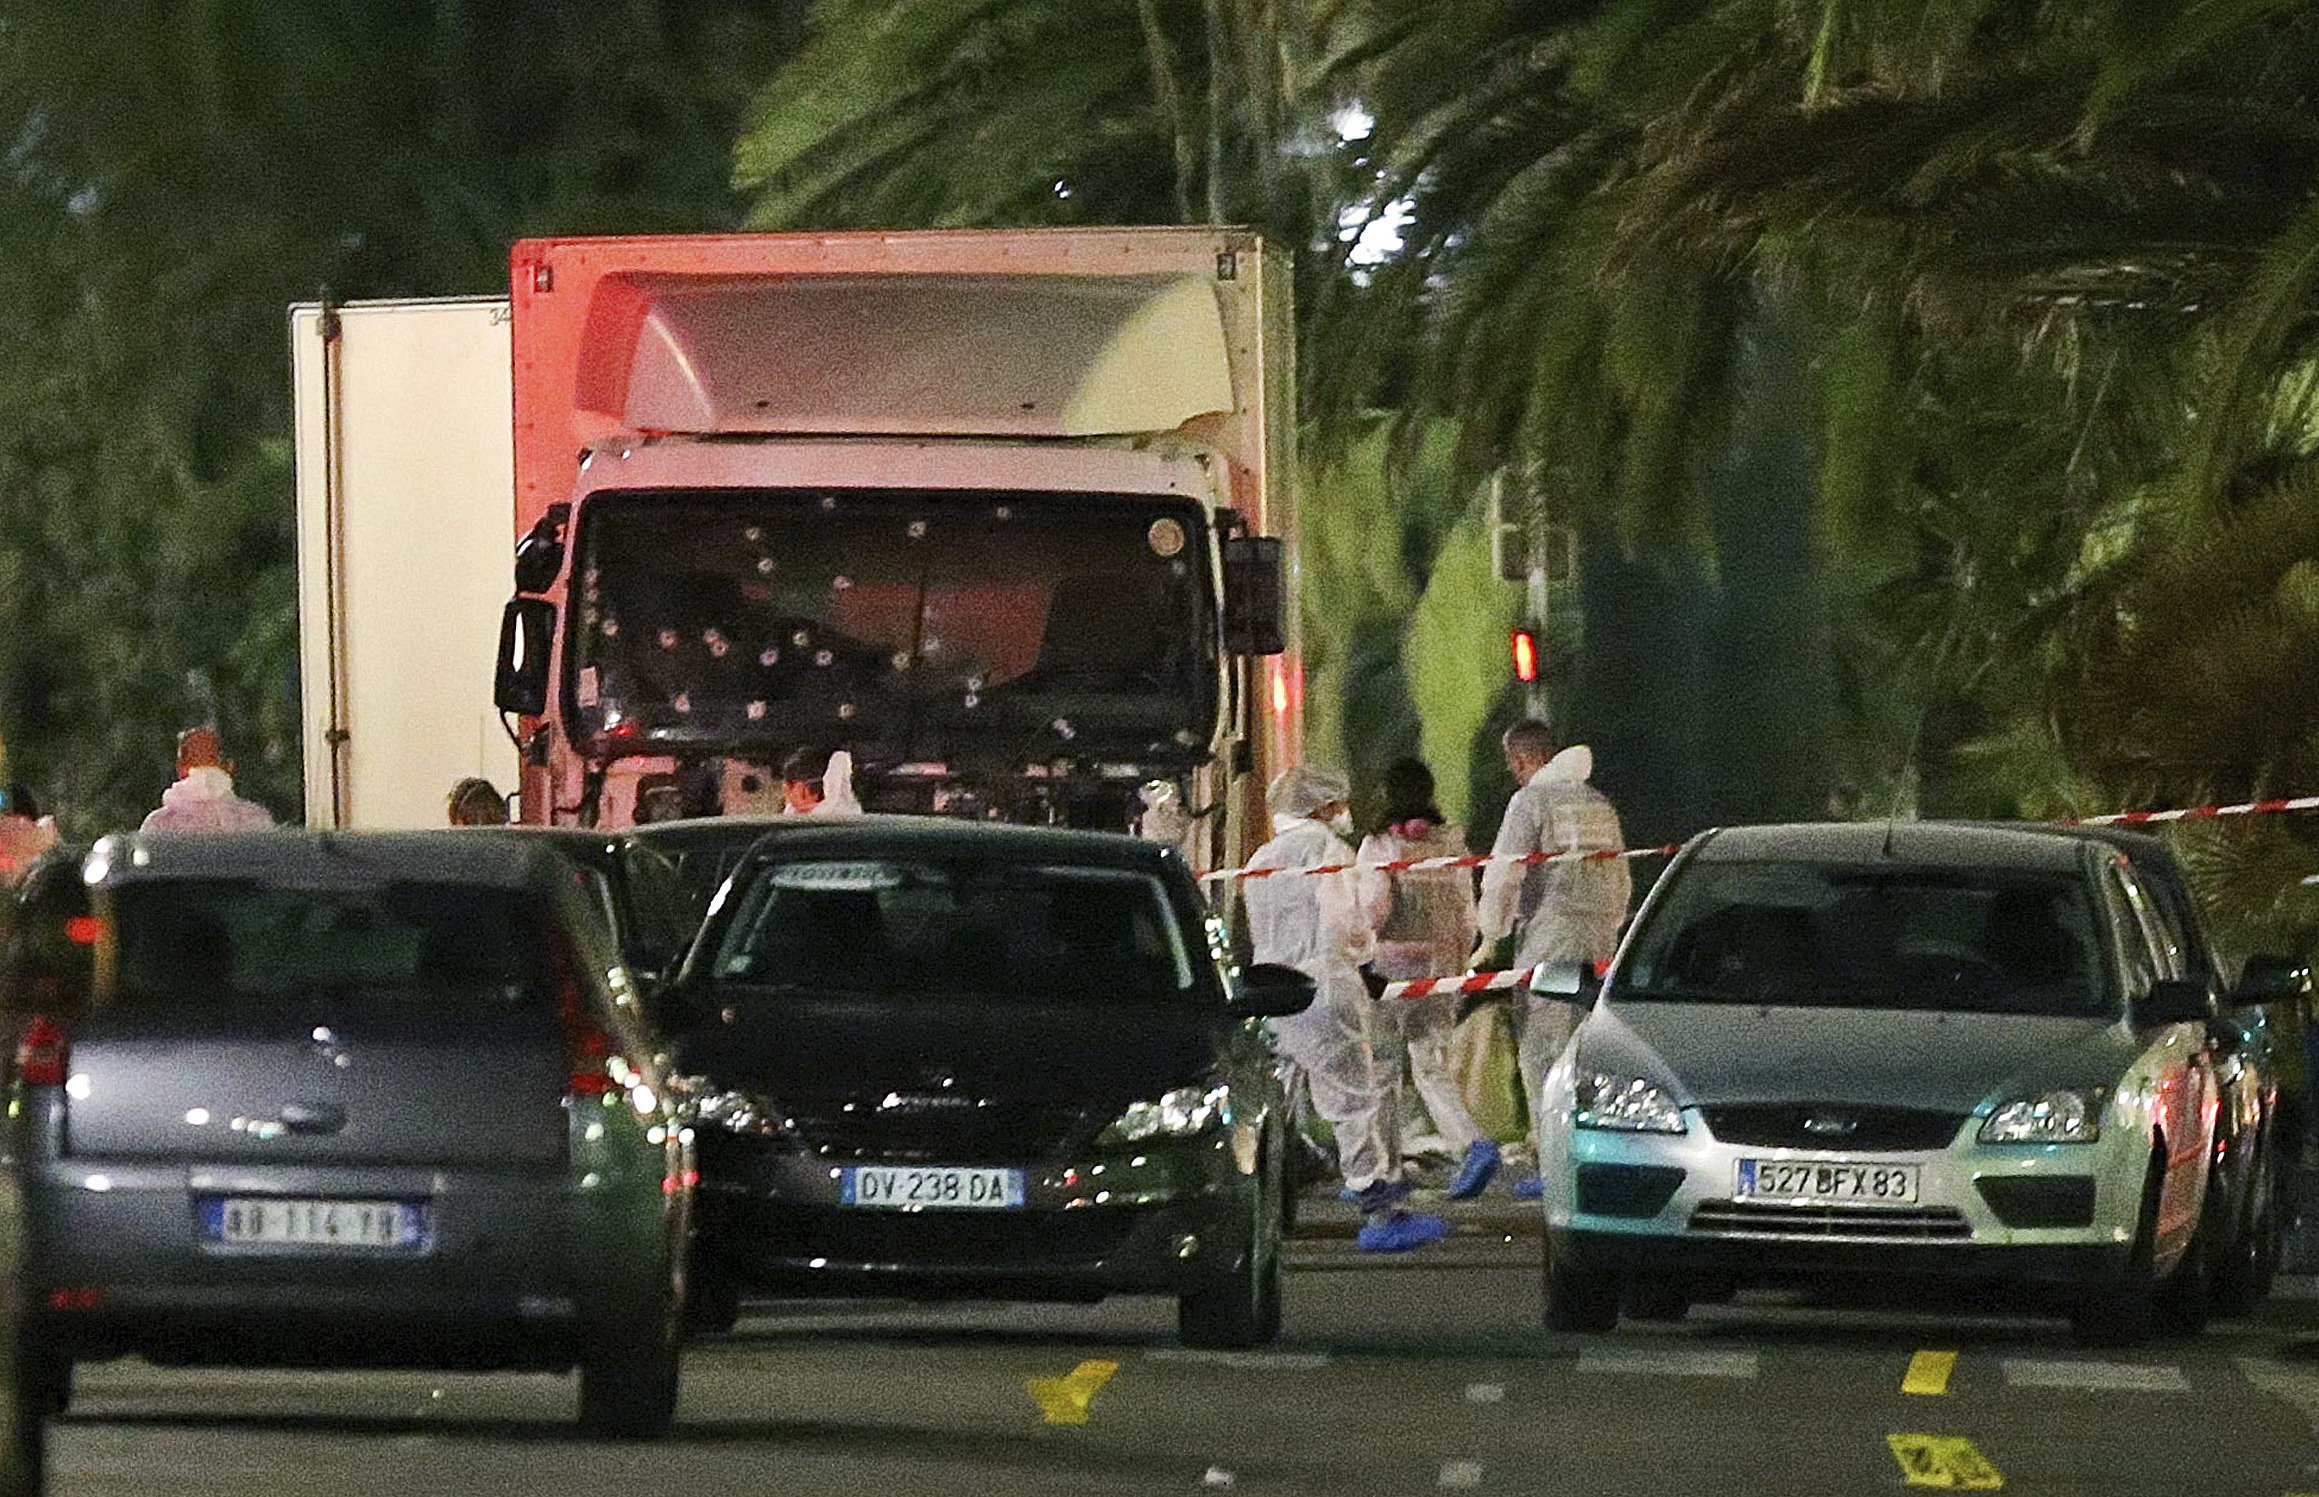 Nice1 2 Photos Show Inside Nice Attack Suspects Apartment After Police Raid